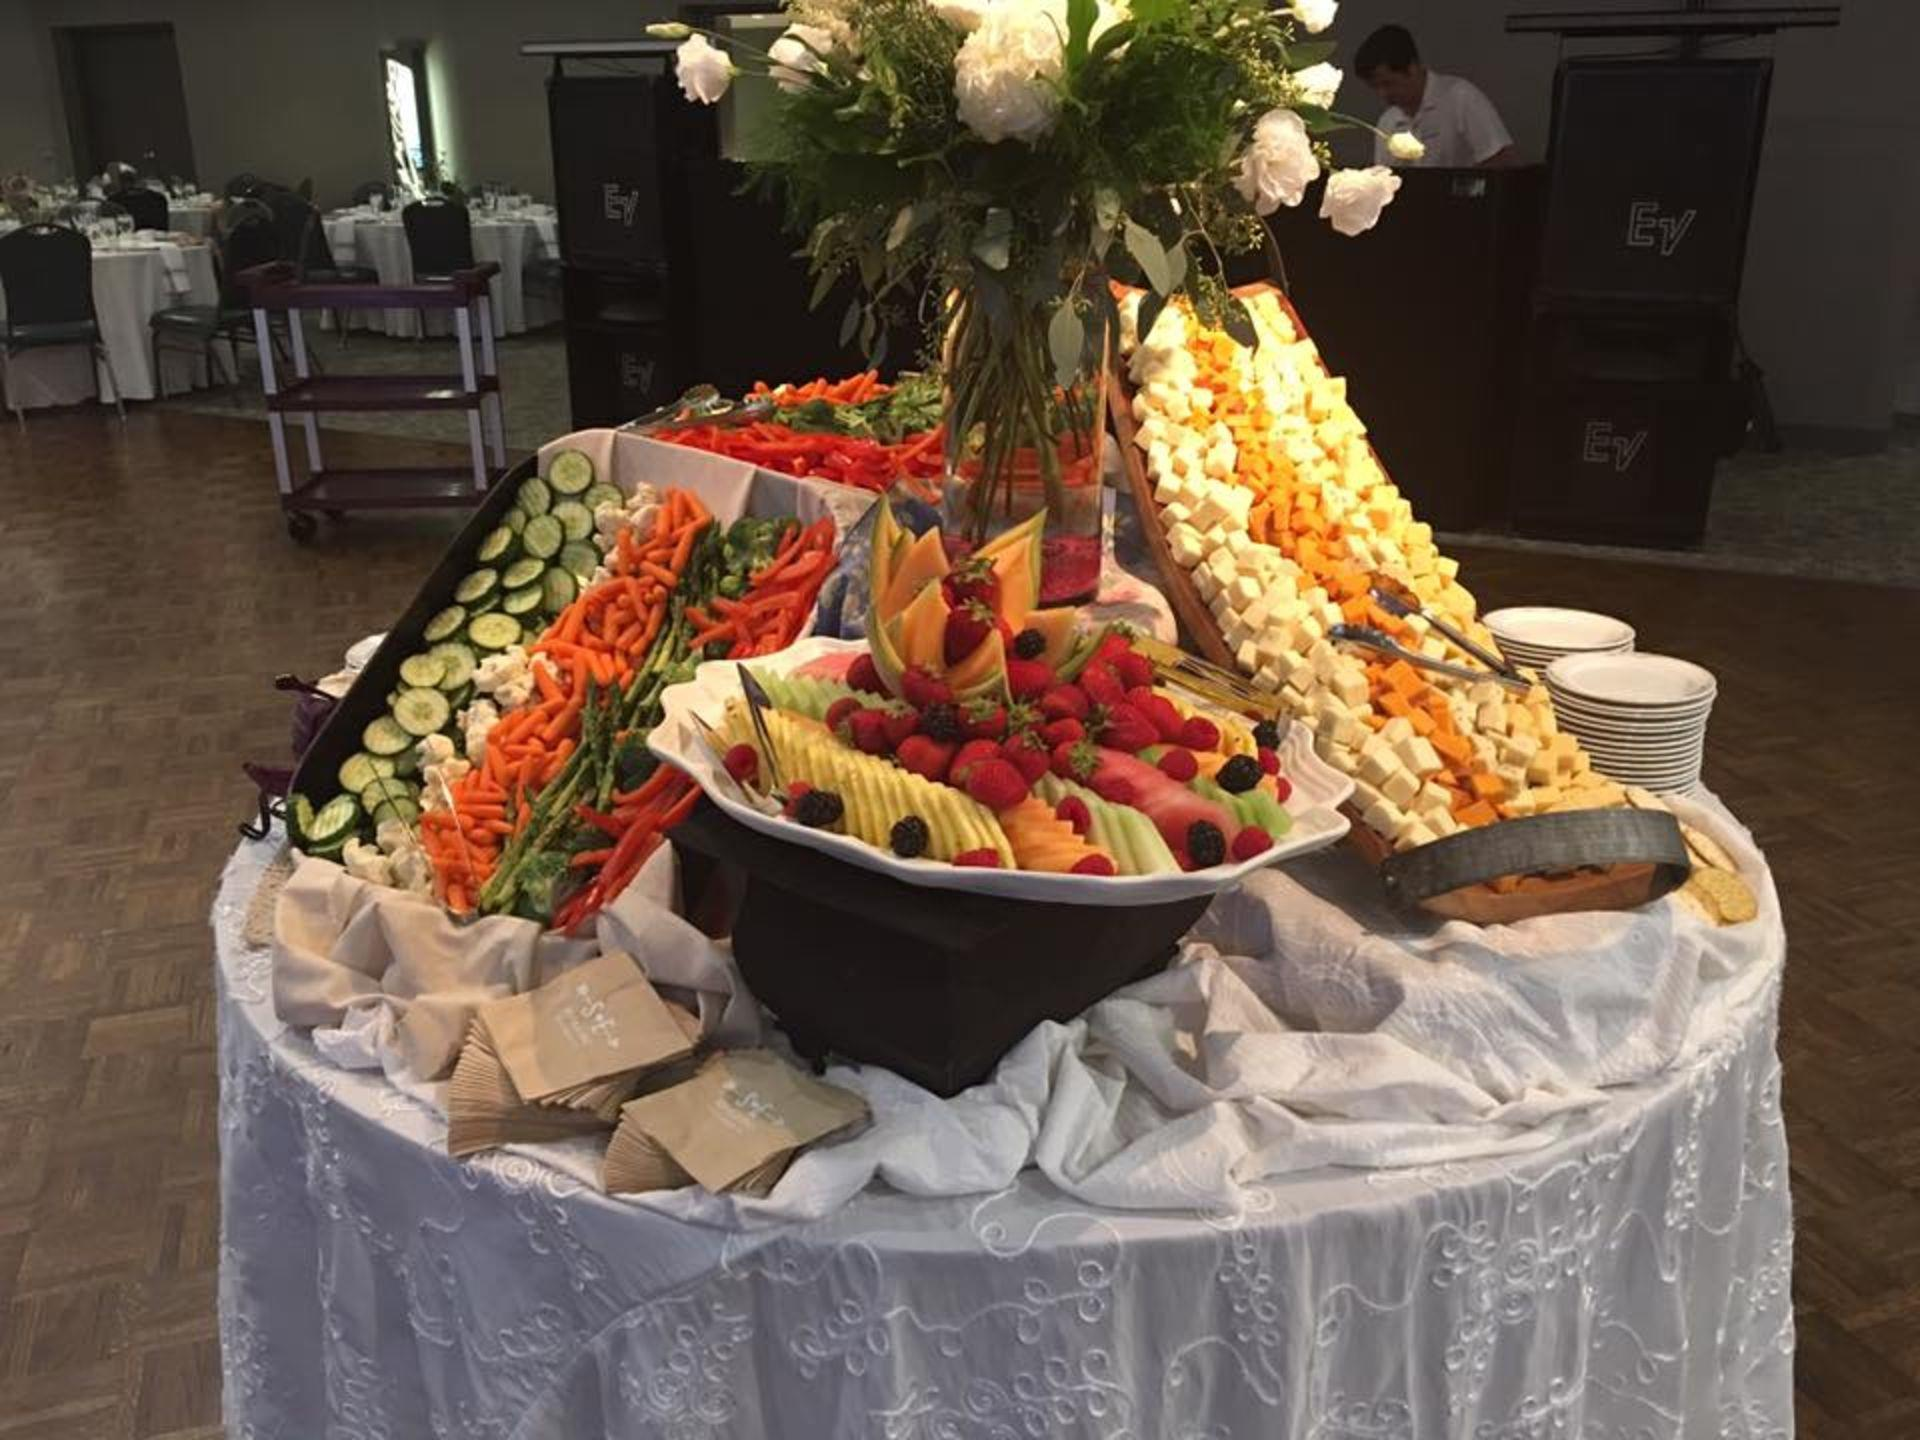 Assorted fruits, vegetables and cheeses on a display table